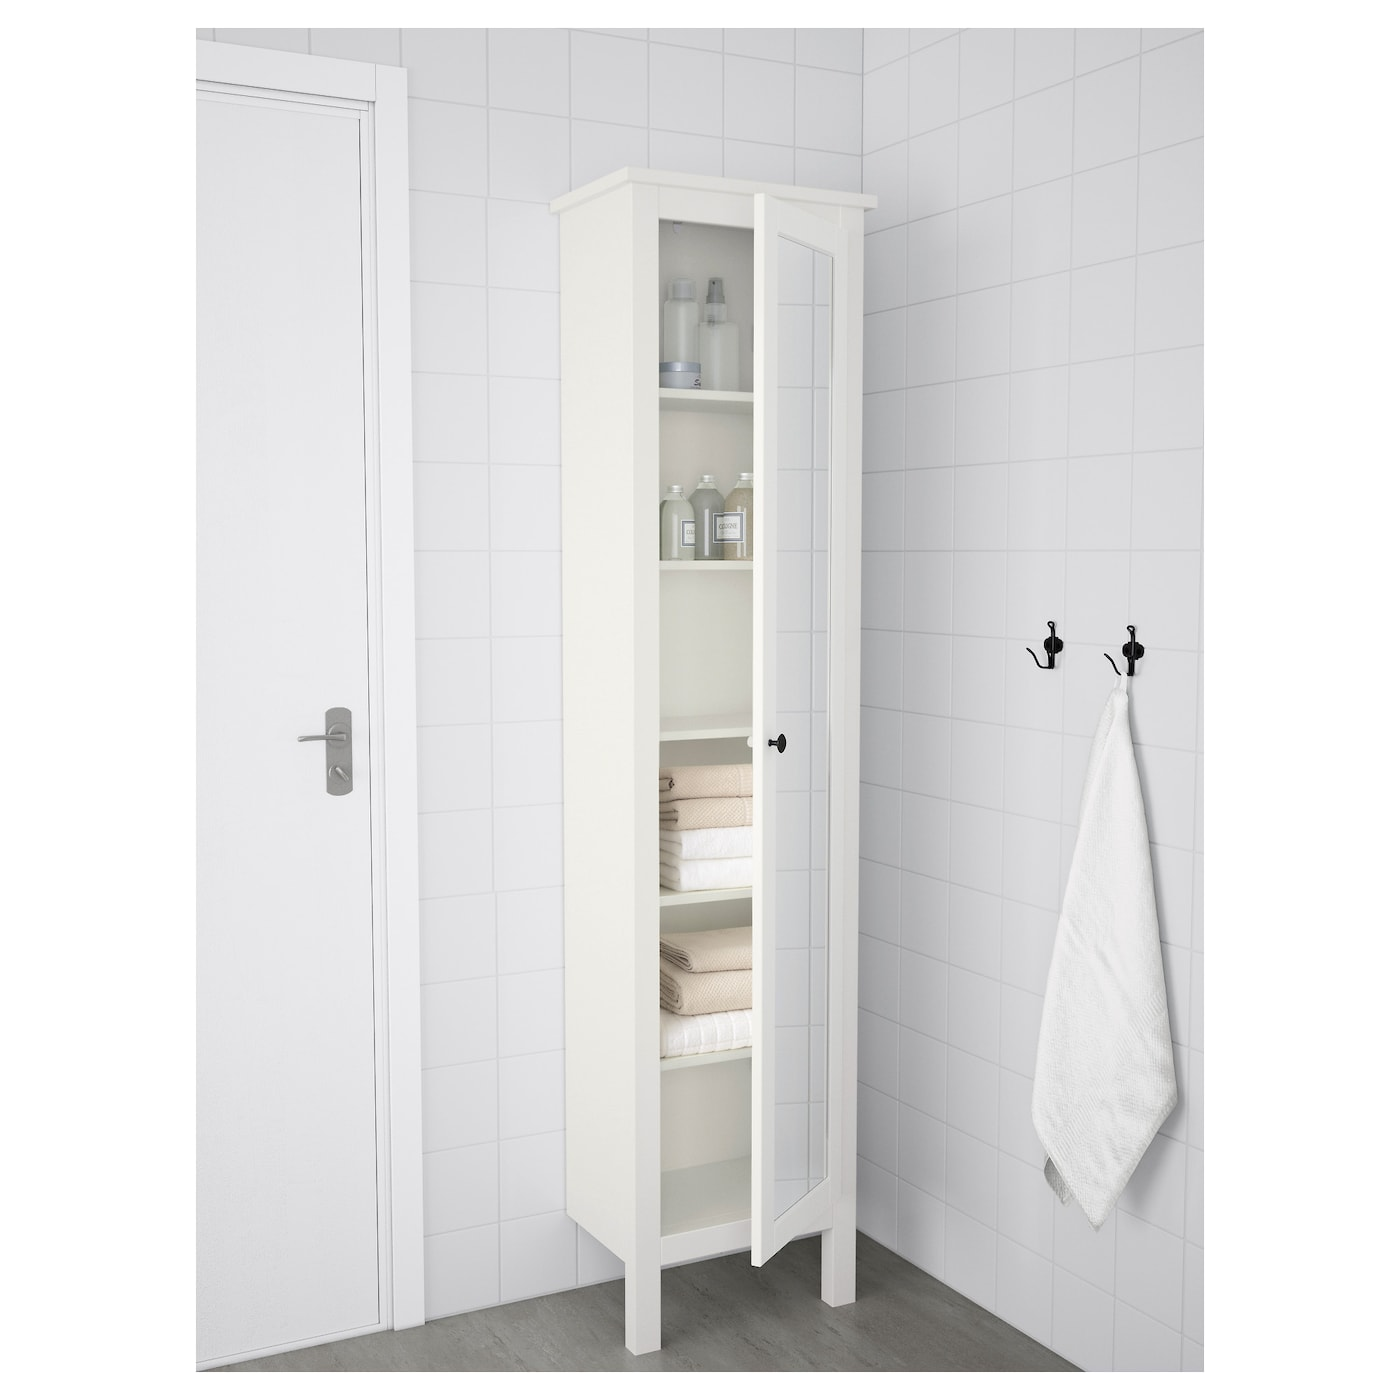 ikea bathroom cabinet white hemnes high cabinet with mirror door white 49 x 31 x 200 18809